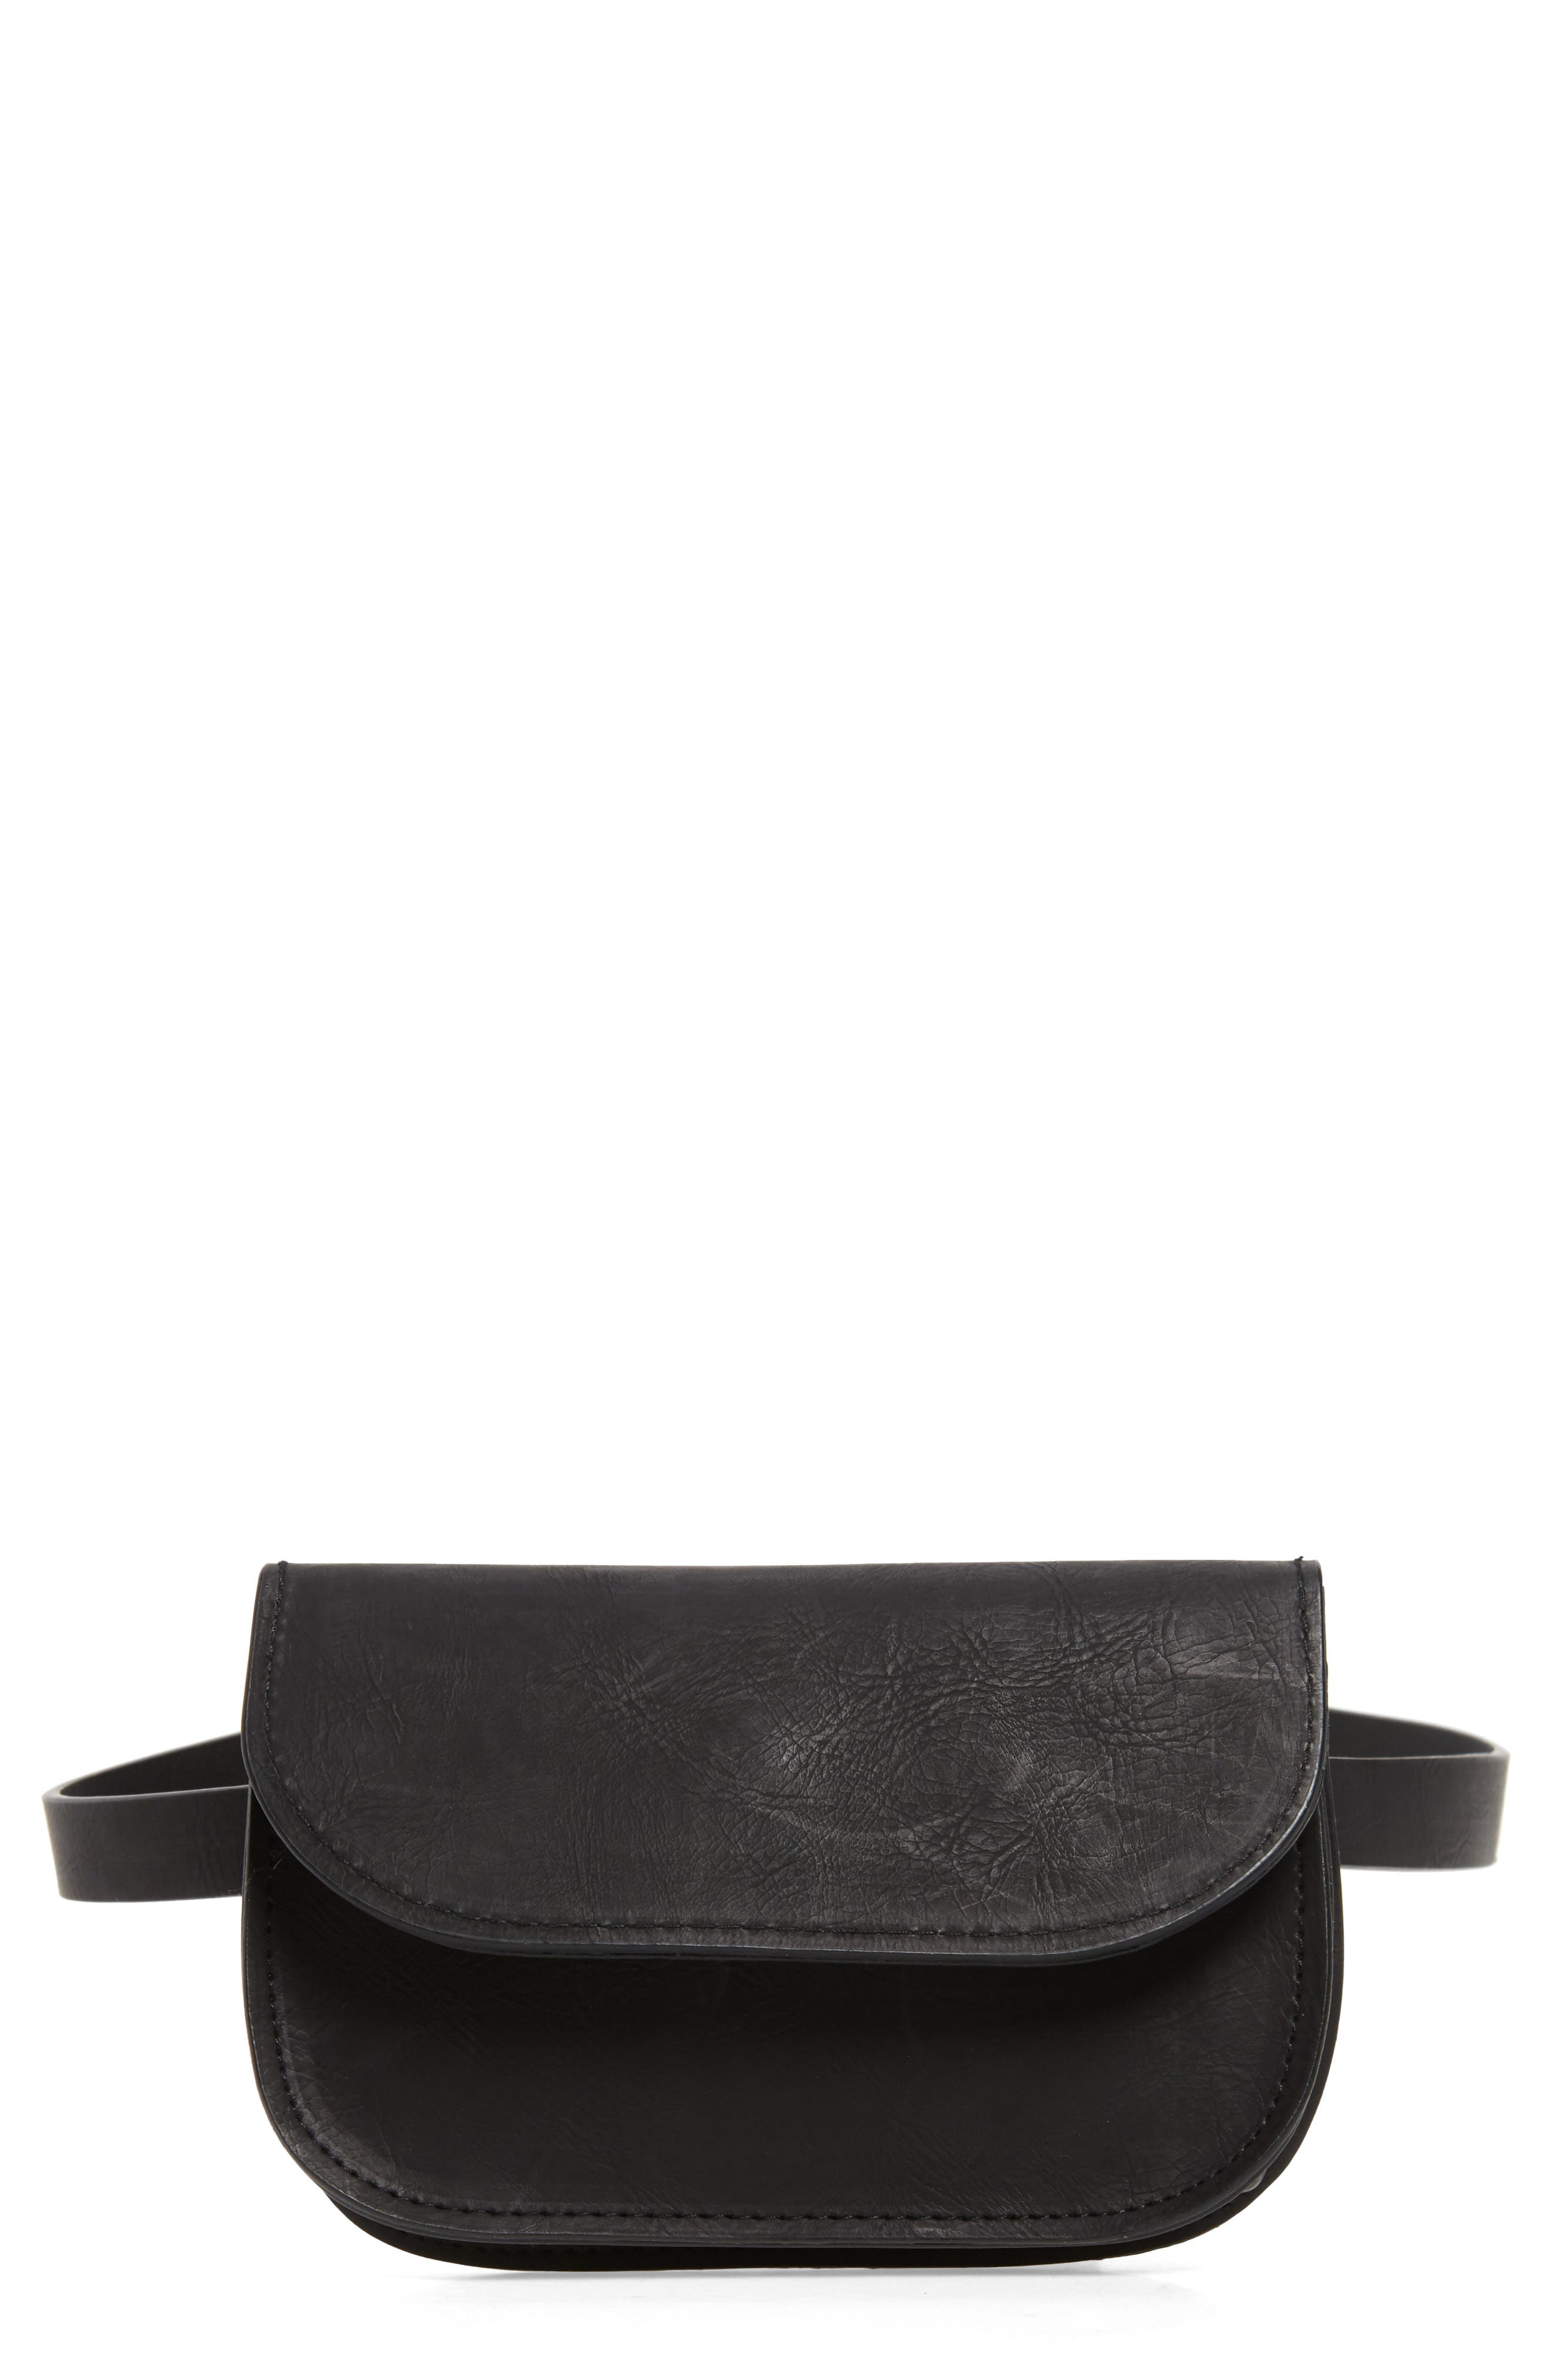 Alternate Image 1 Selected - Accessory Collective Faux Leather Belt Bag